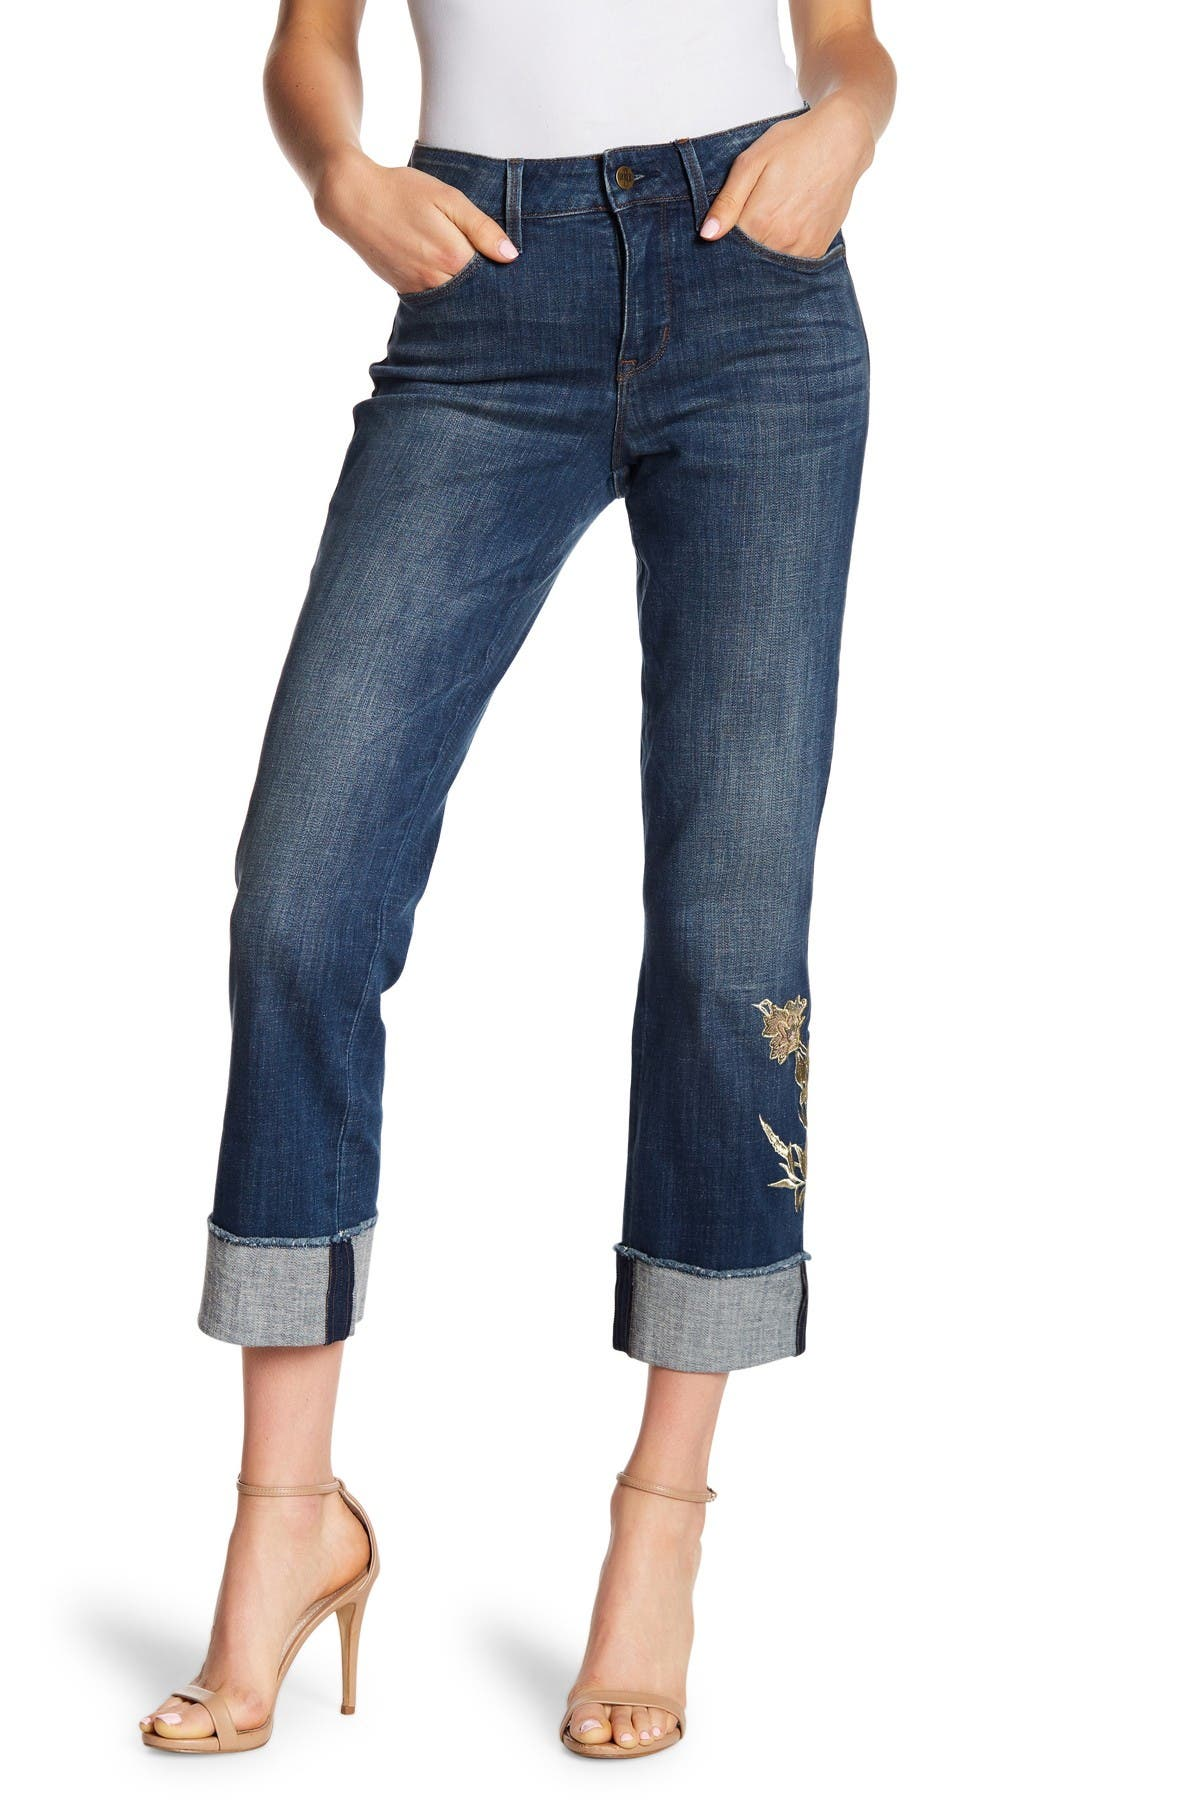 Image of NYDJ Marilyn Cuffed Ankle Jeans